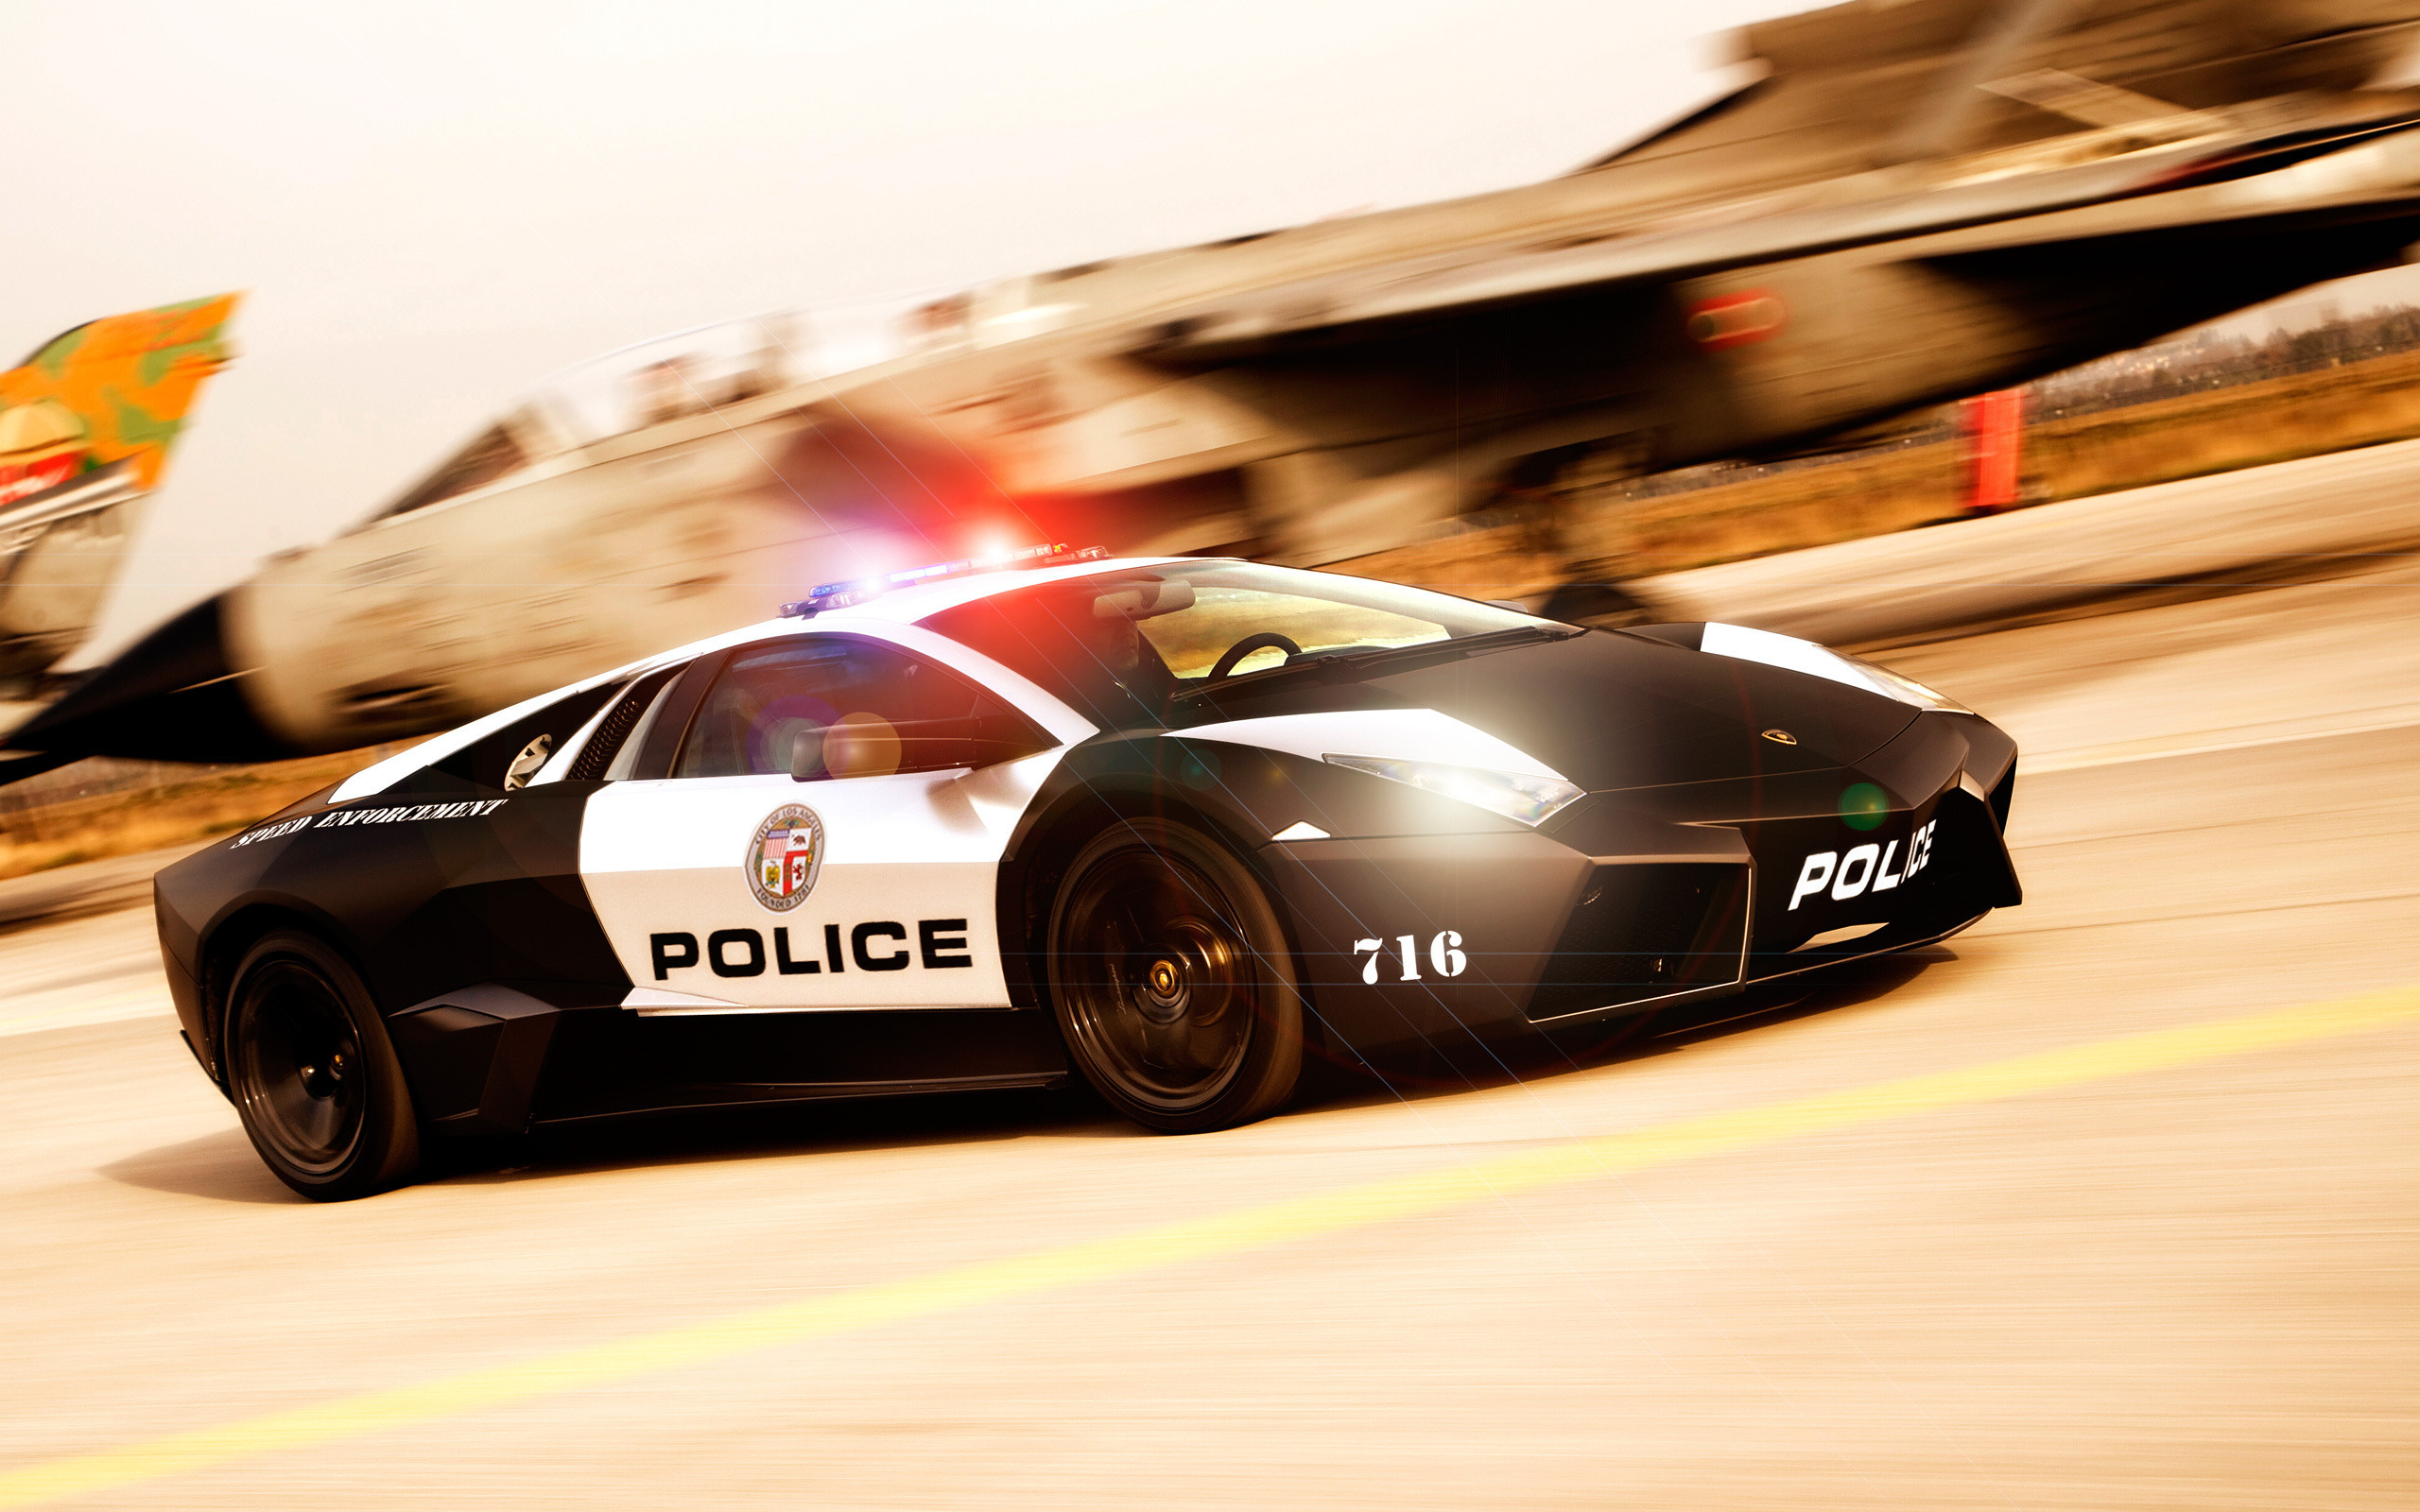 NFS Police Car 2560 x 1600 Download Close 2560x1600